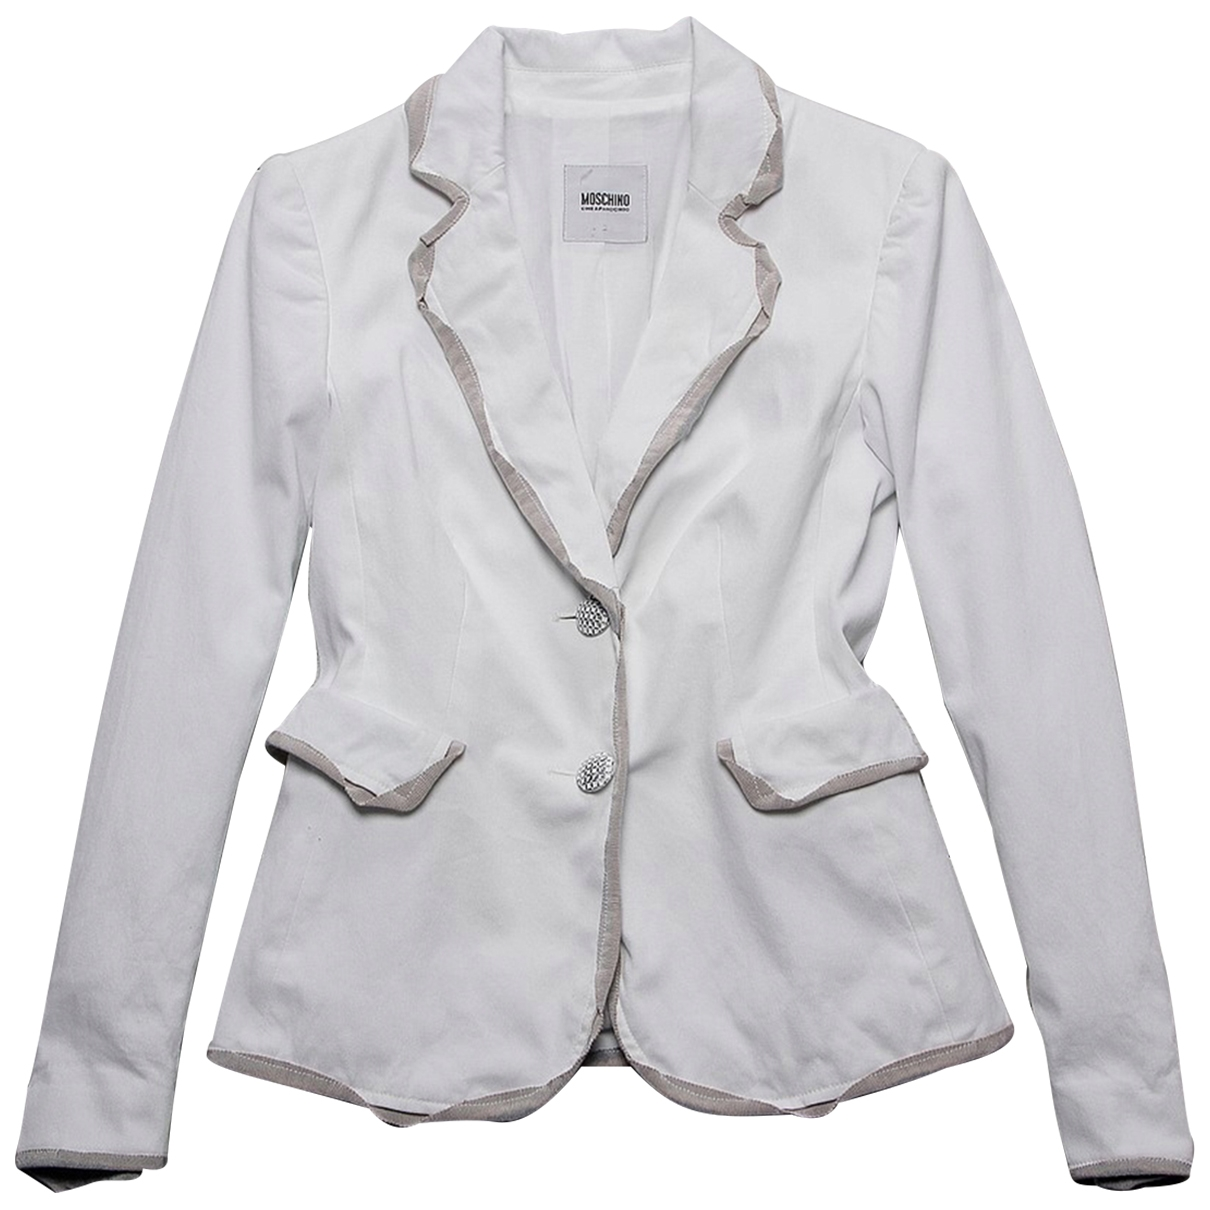 Moschino Cheap And Chic \N White Cotton jacket for Women S International